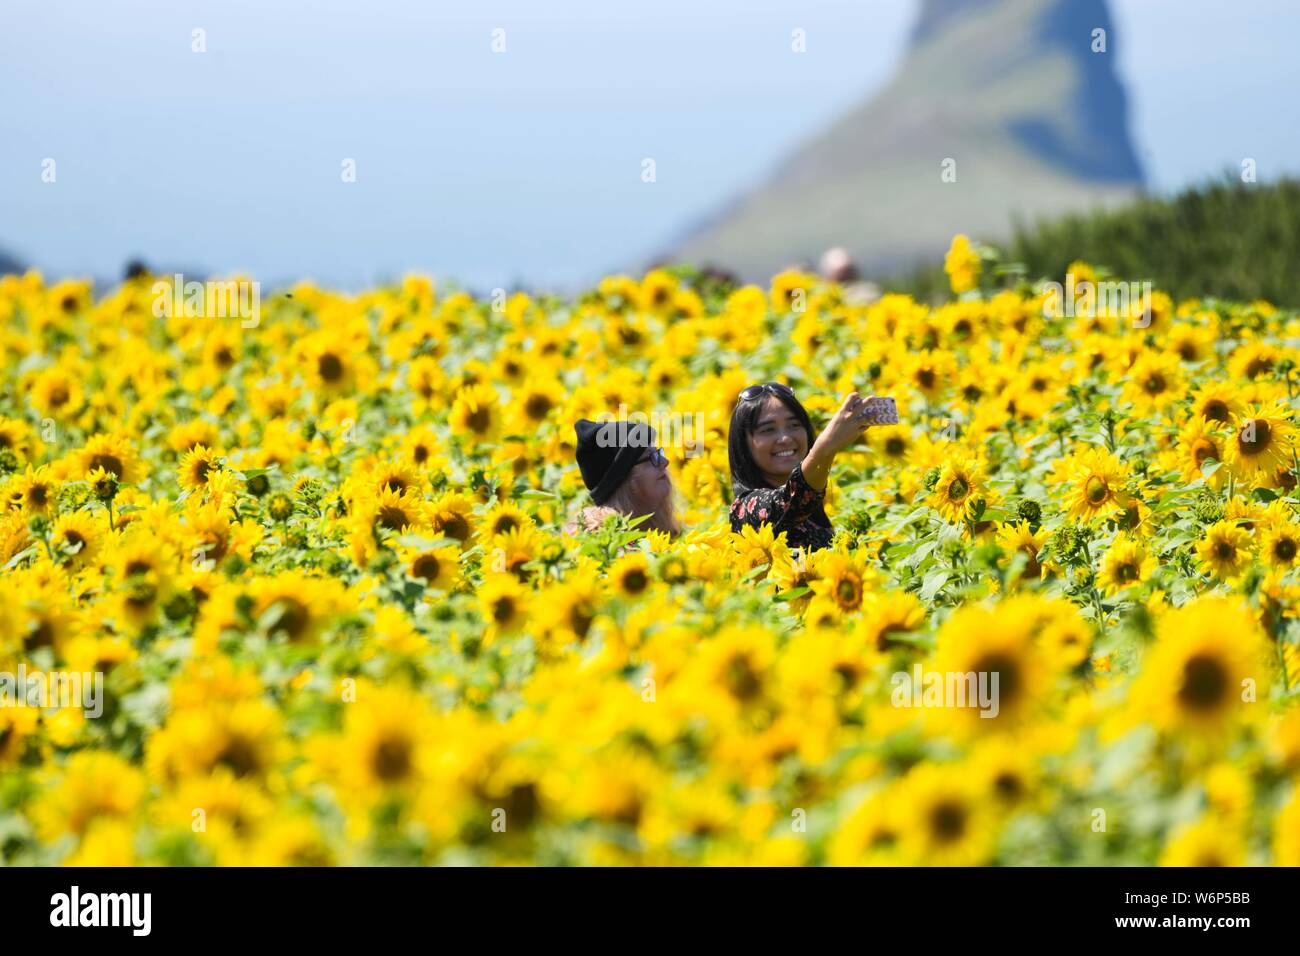 Rhossiil, Wales, UK. Friday, 2nd August 2019 Thousands of people are travelling to Rhossili on the Gower peninsular in South Wales, UK, to see the fields of sunflowers which have become a major attraction for visitors to the area. The National Trust, who manage the fields, are expecting crowds to peak this weekend as the sunflowers have become a must have selfie location for todays Instagram generation, who want to picture themselves amongst the beautiful flowers whilst enjoying the record breaking Summer weather in the UK. Credit : Robert Melen/Alamy Live News. Stock Photo